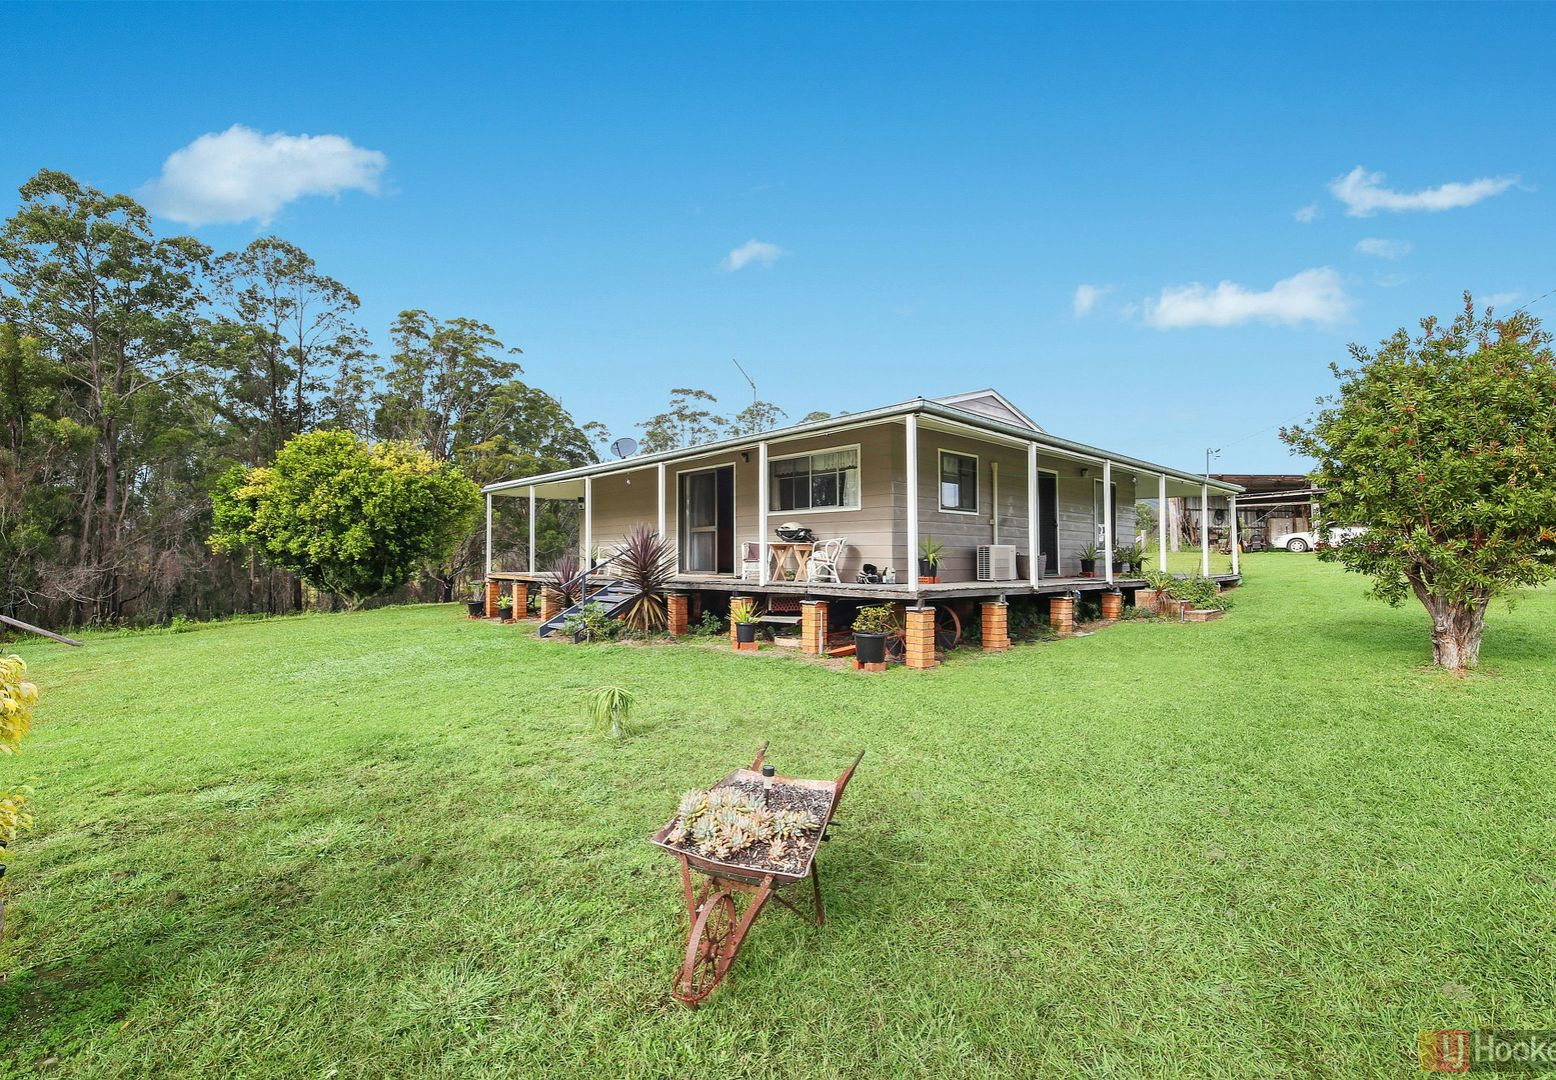 119 126 130 Rainbows End Road, Dondingalong NSW 2440, Image 0